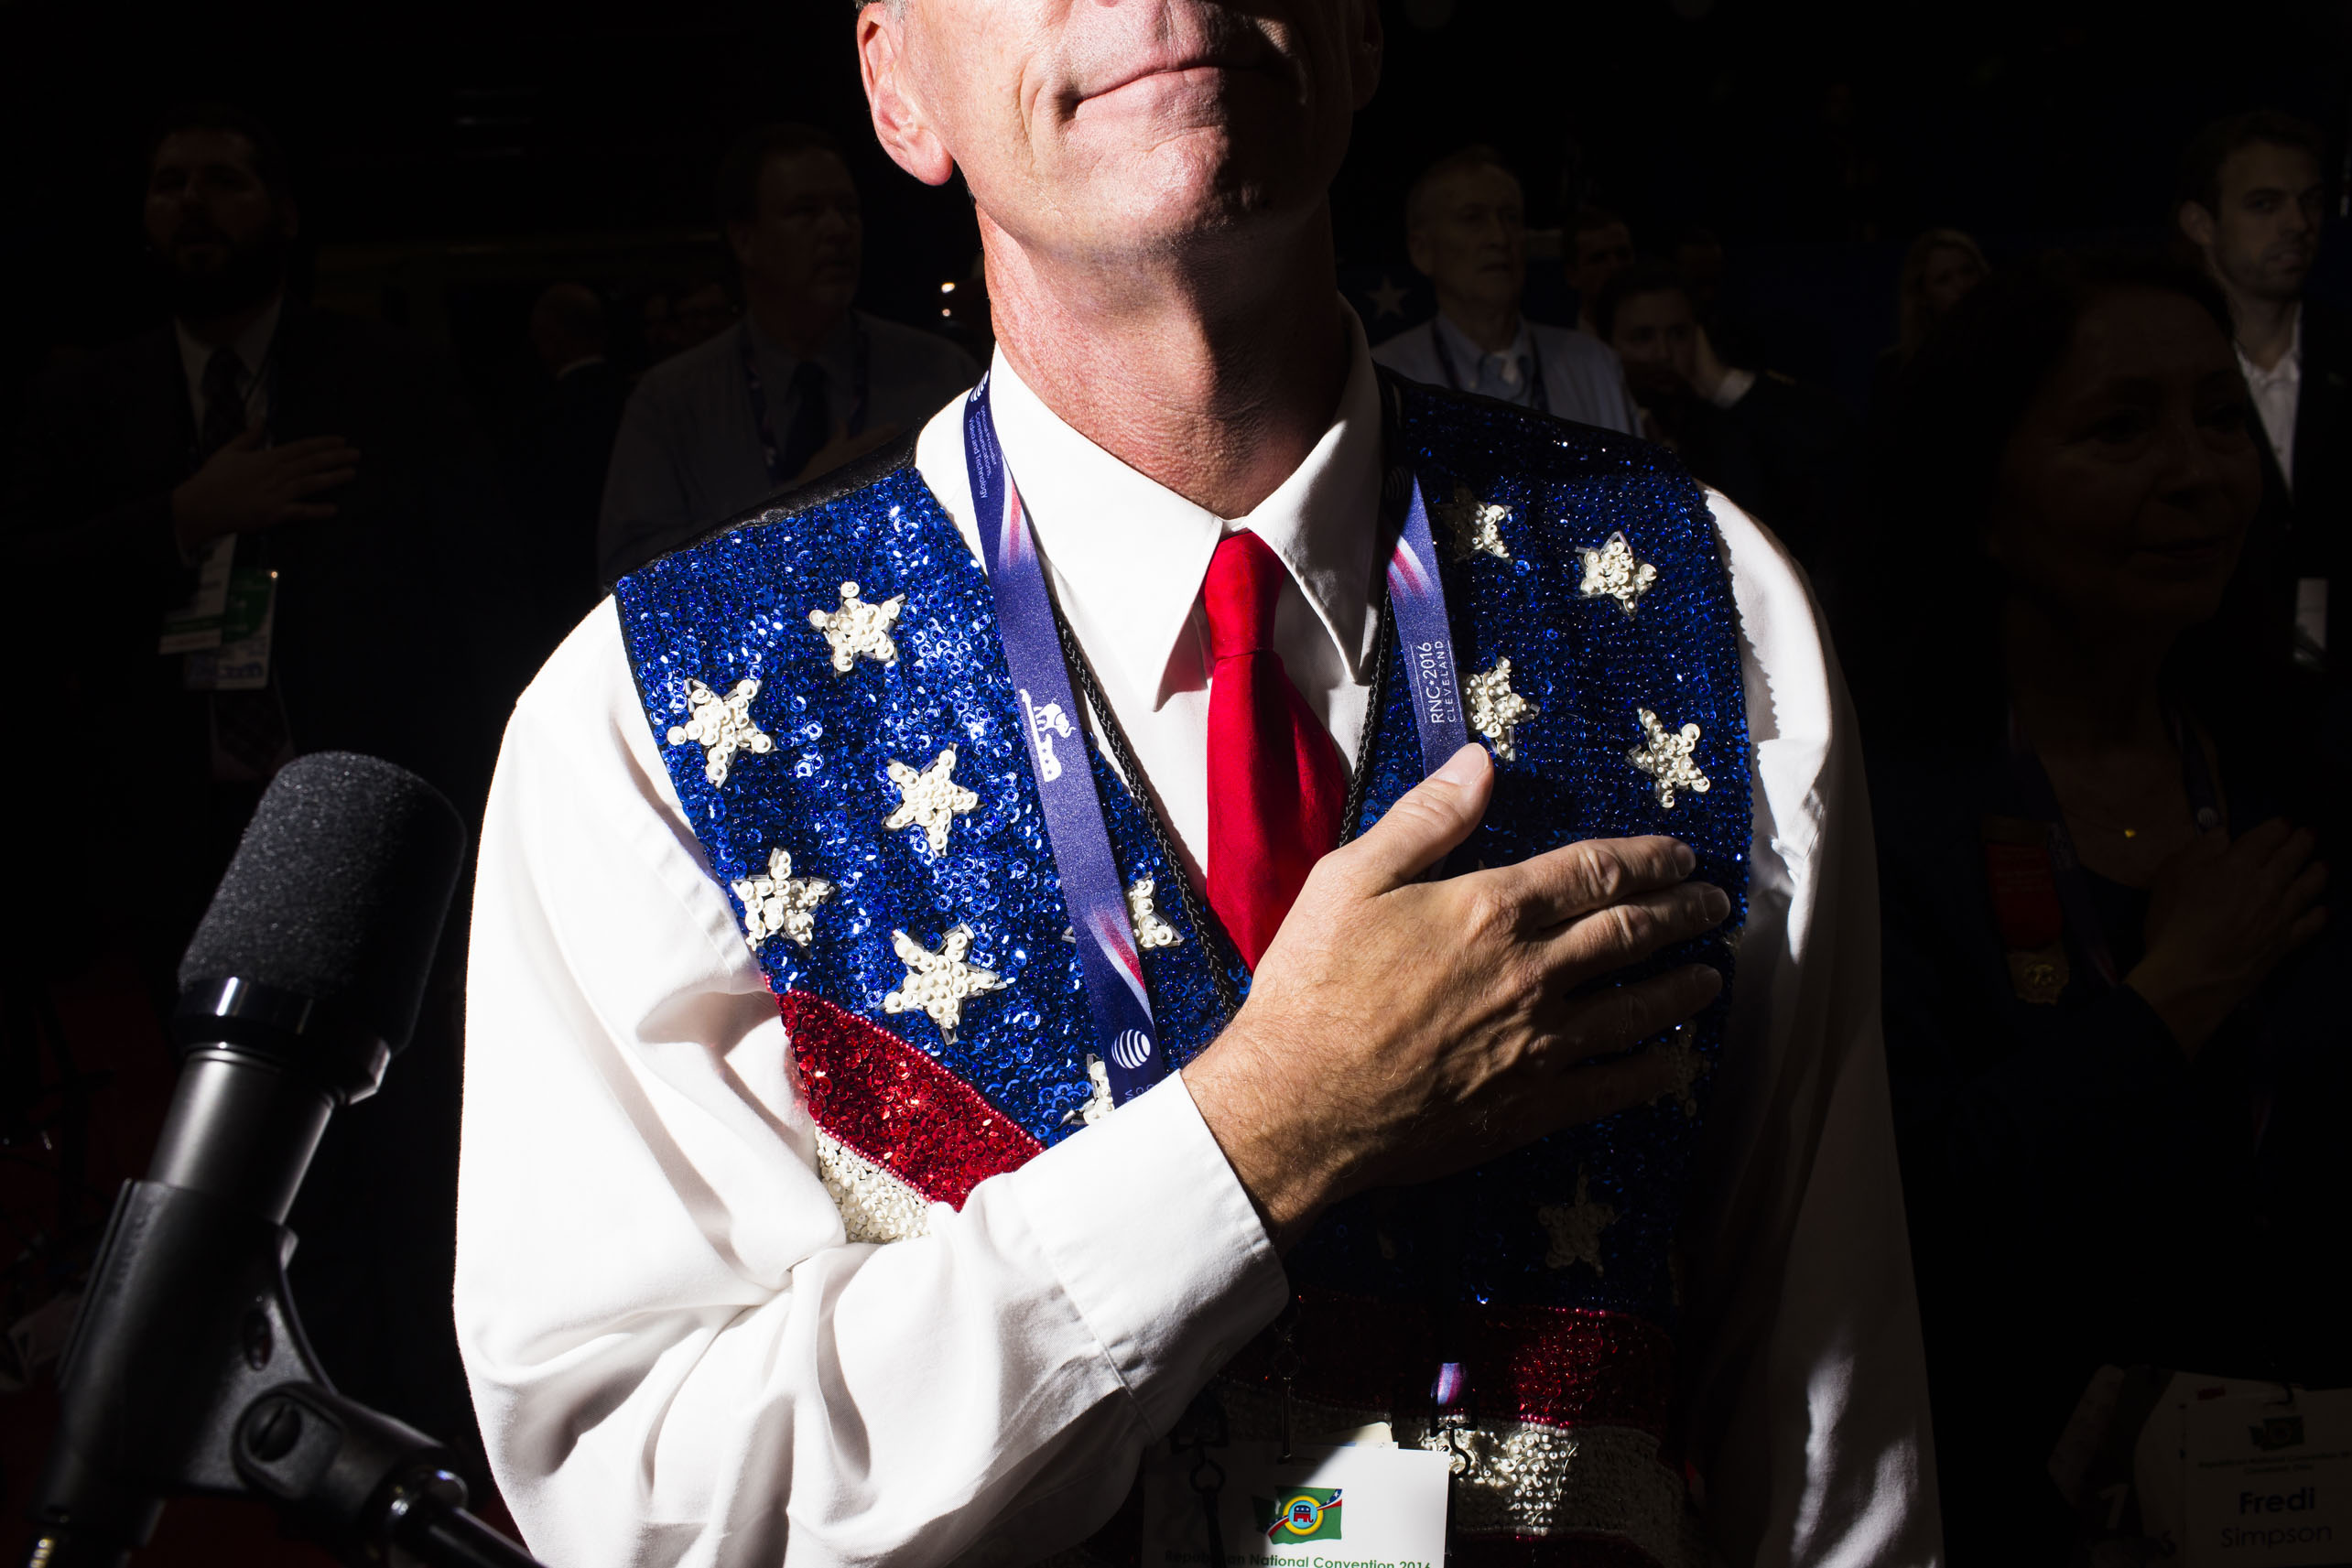 Photographer Landon Nordeman captures scenes from the floor of the 2016 Republican National Convention in Cleveland, while on assignment for TIME. Here, a star-spangled, sequined vest makes a statement on the opening day, Monday, July 18, 2016.